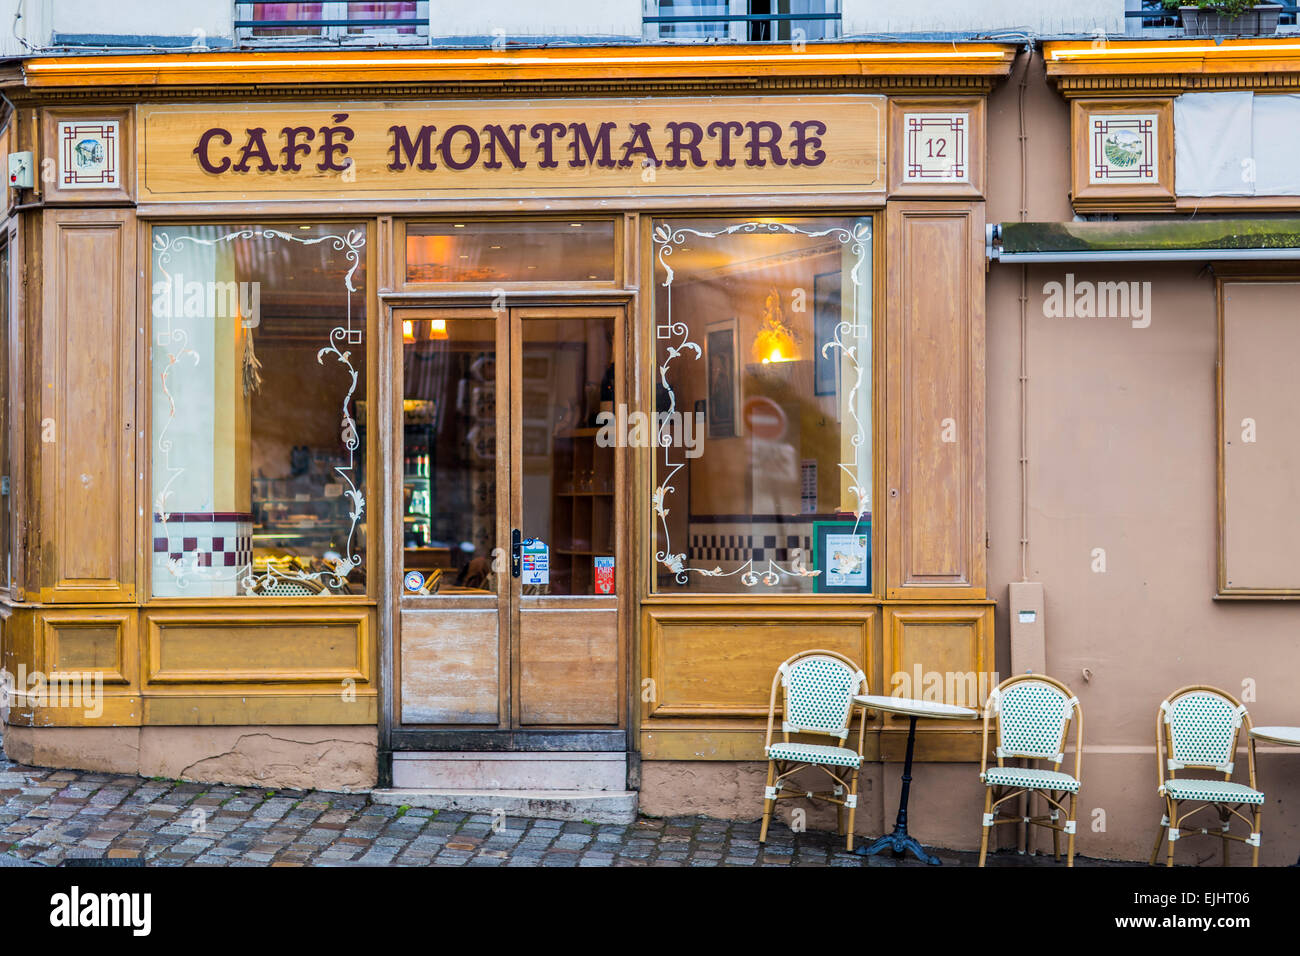 Outdoor cafe restaurant cafe montmartre in paris france for Restaurant miroir montmartre